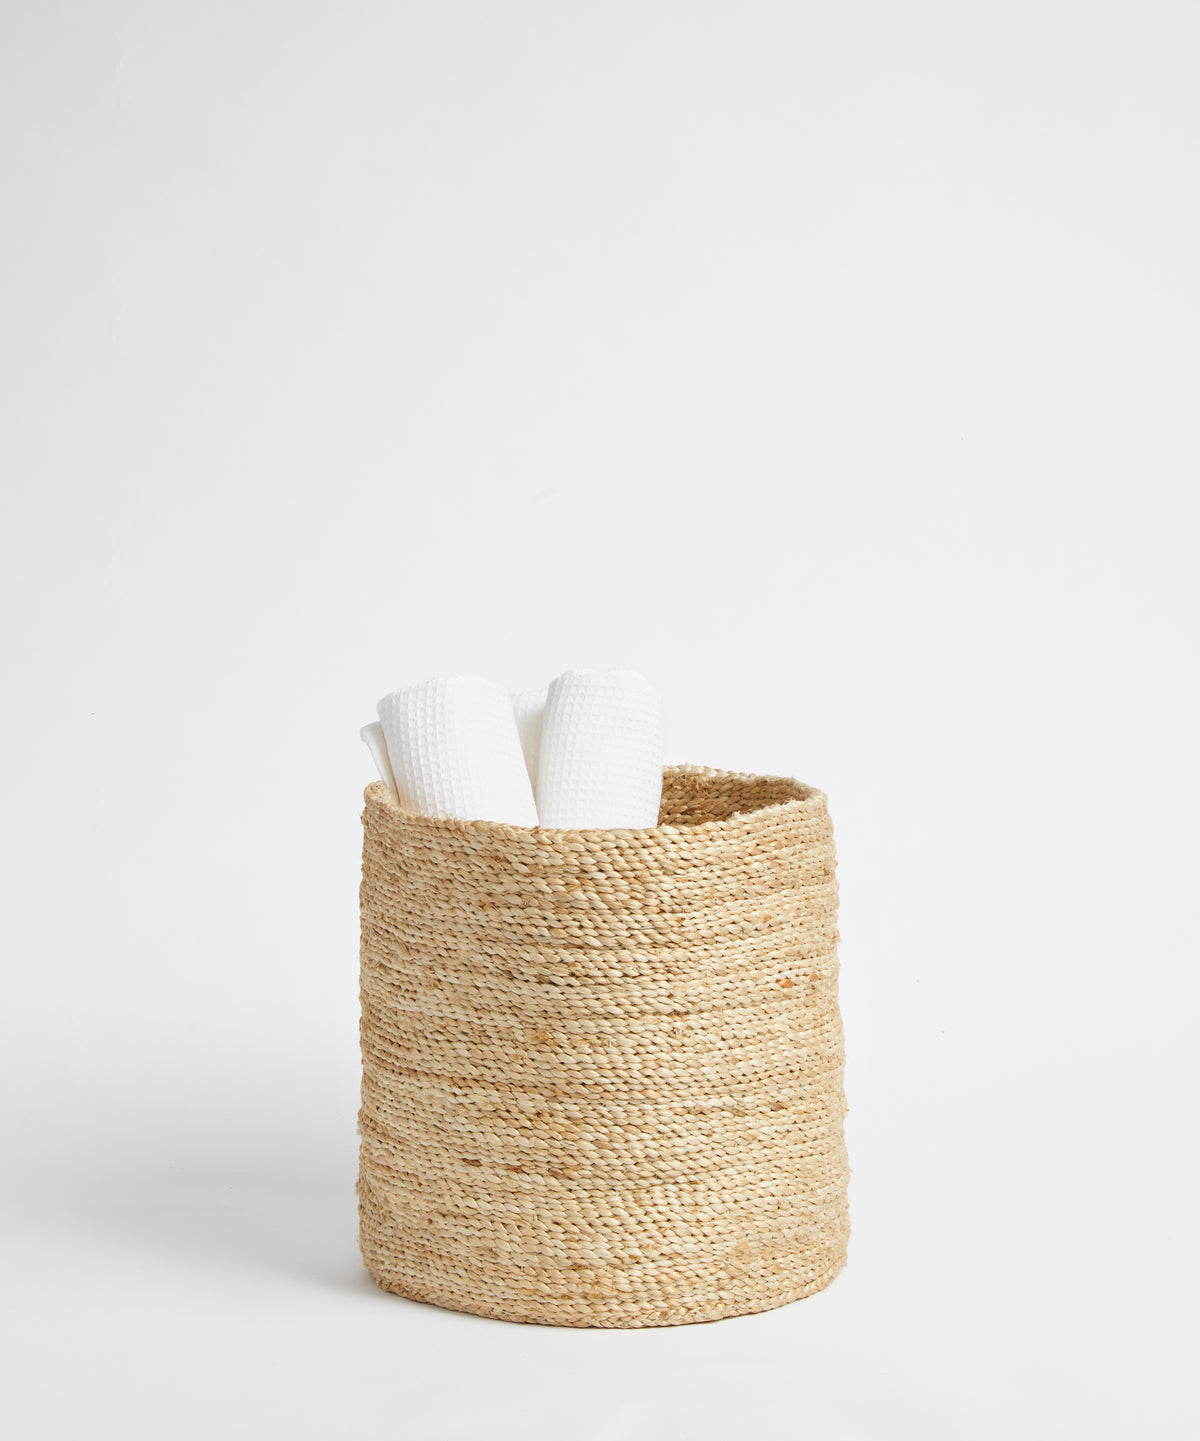 Medium Handwoven Jute Basket